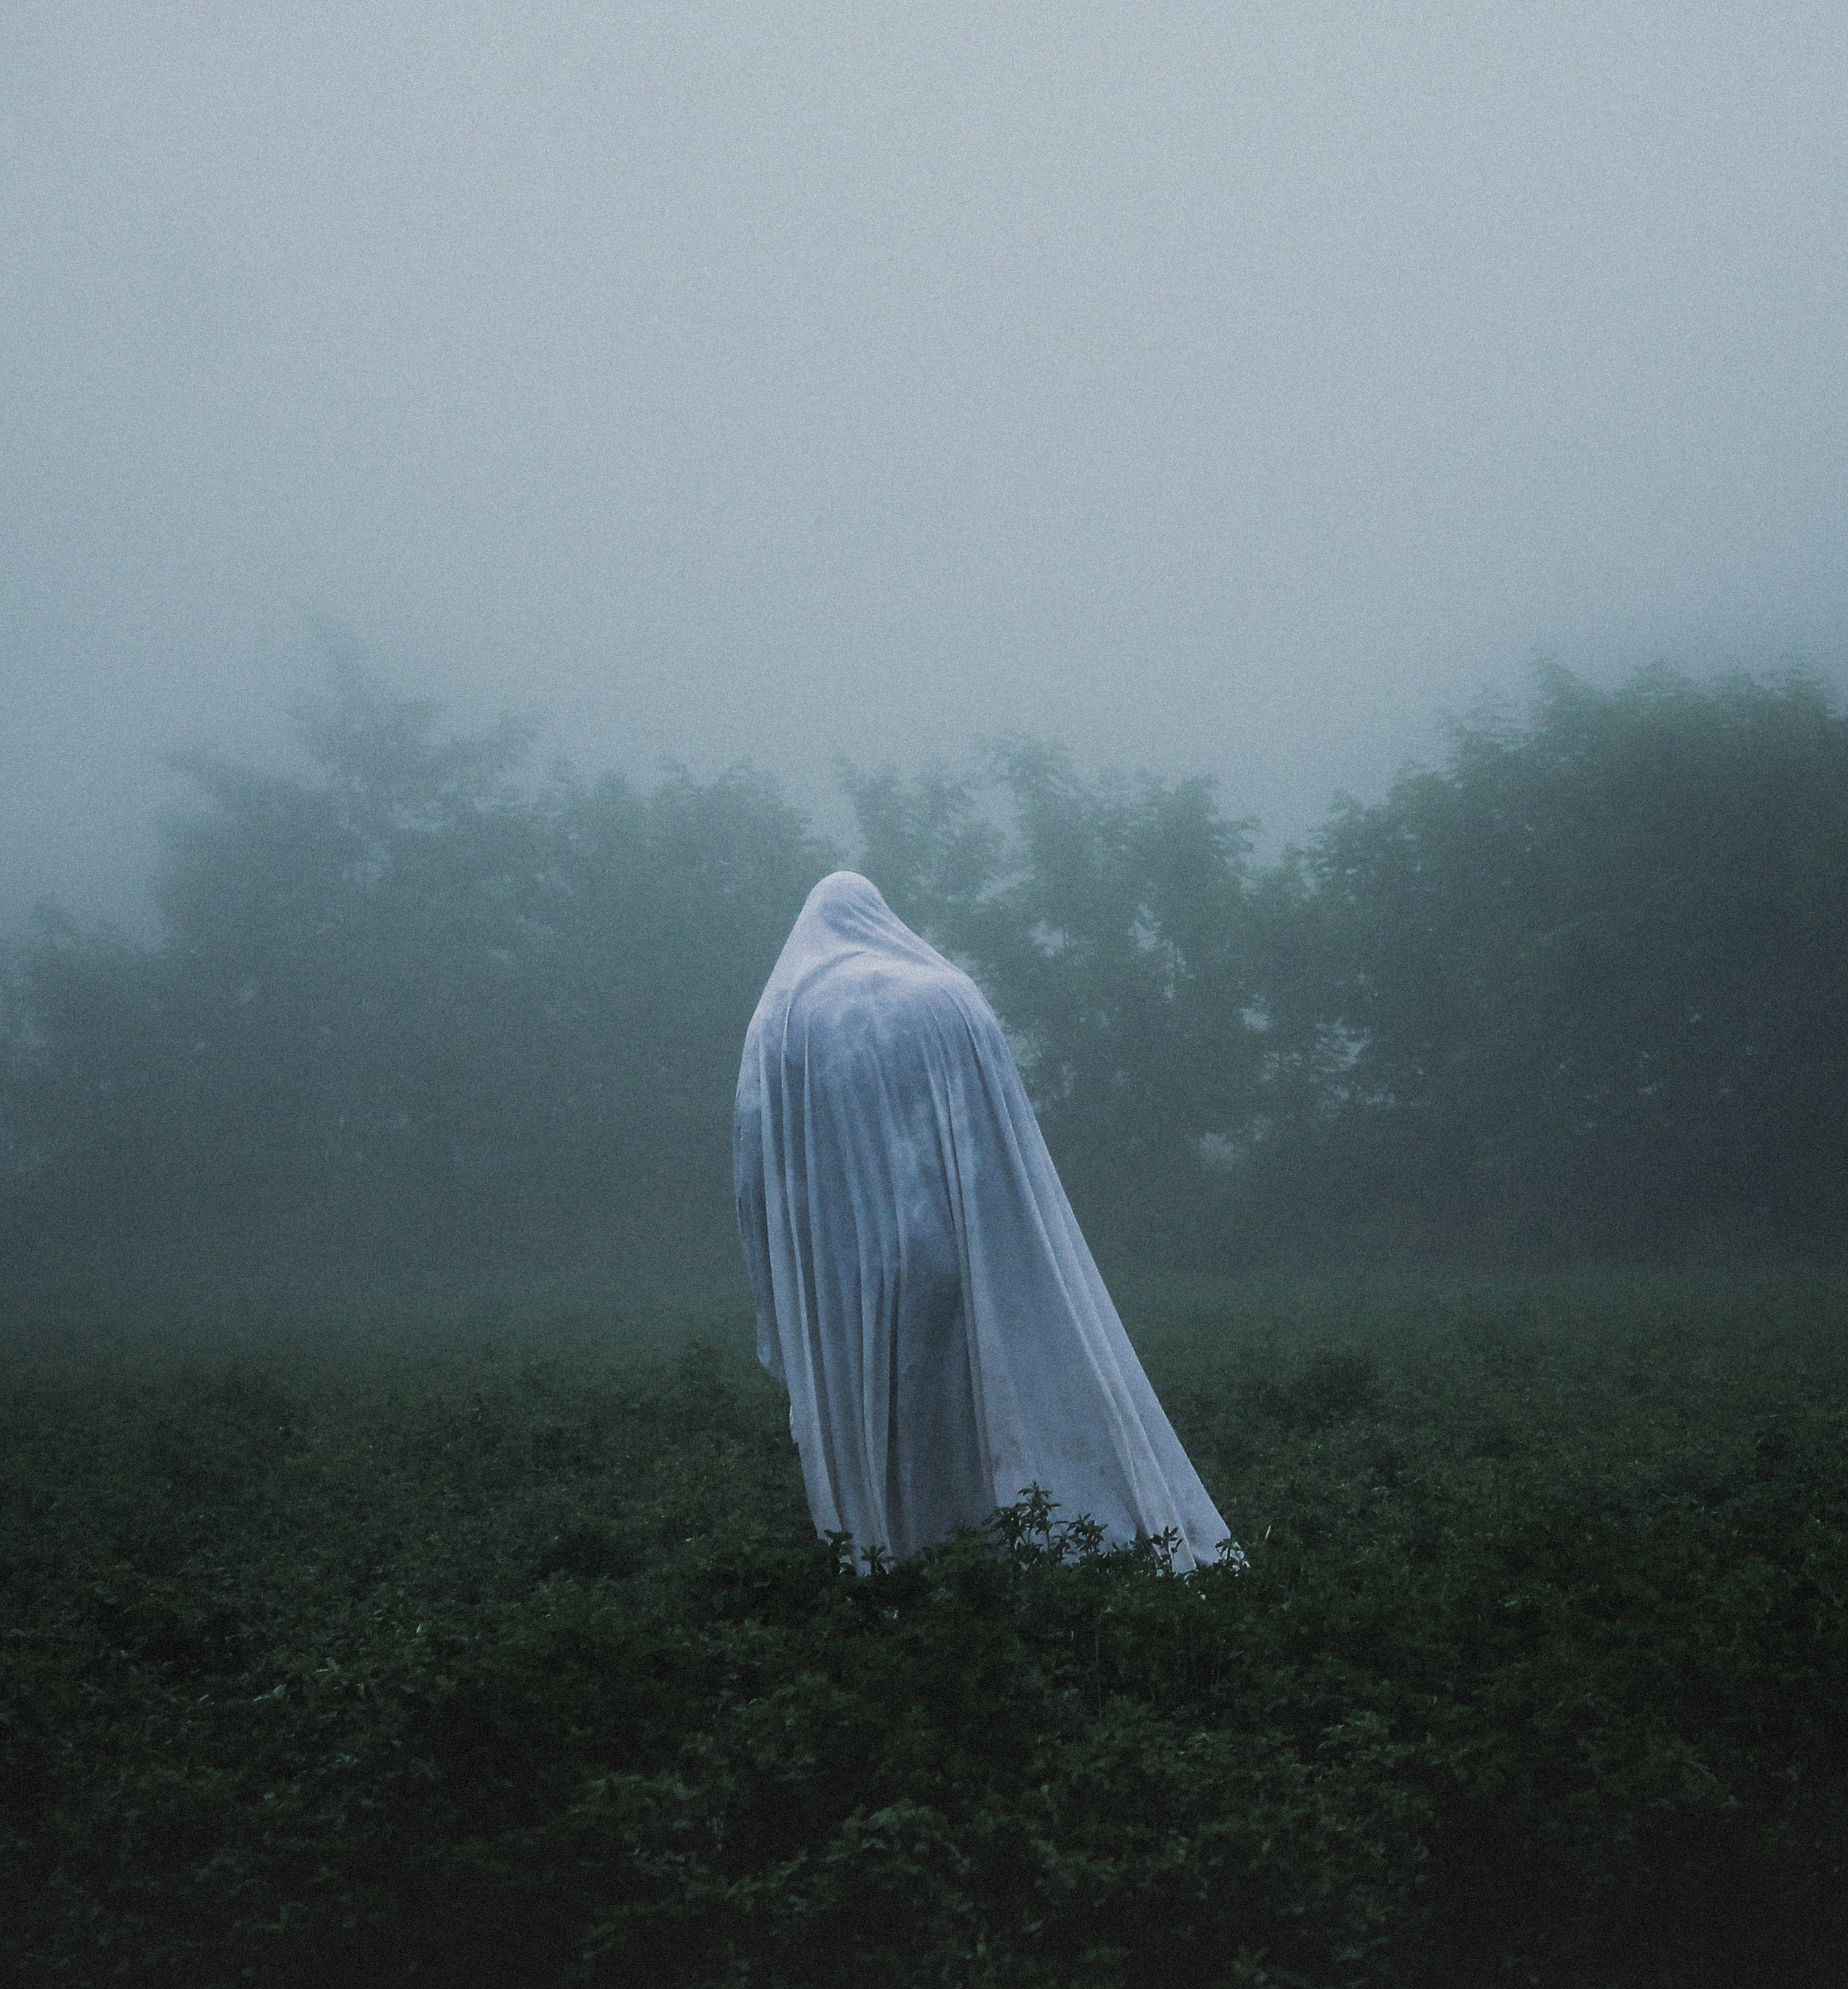 A tale of a ghost ghost stories